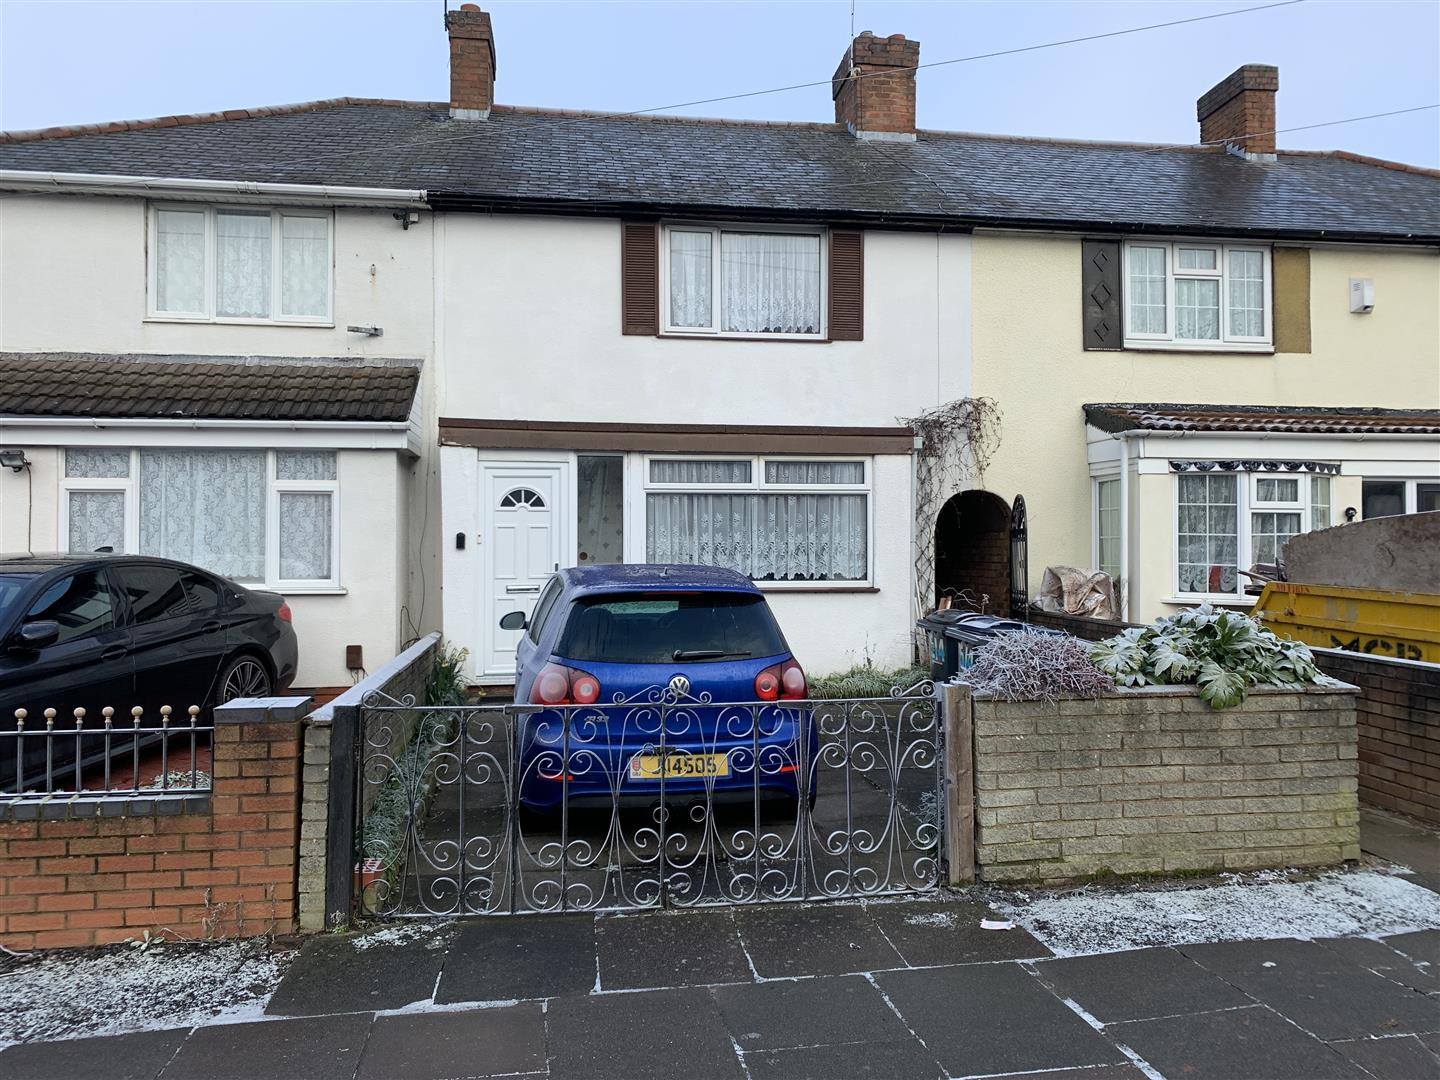 2 bed house for sale in Yardley Green Road, Stechford, Birmingham, B33